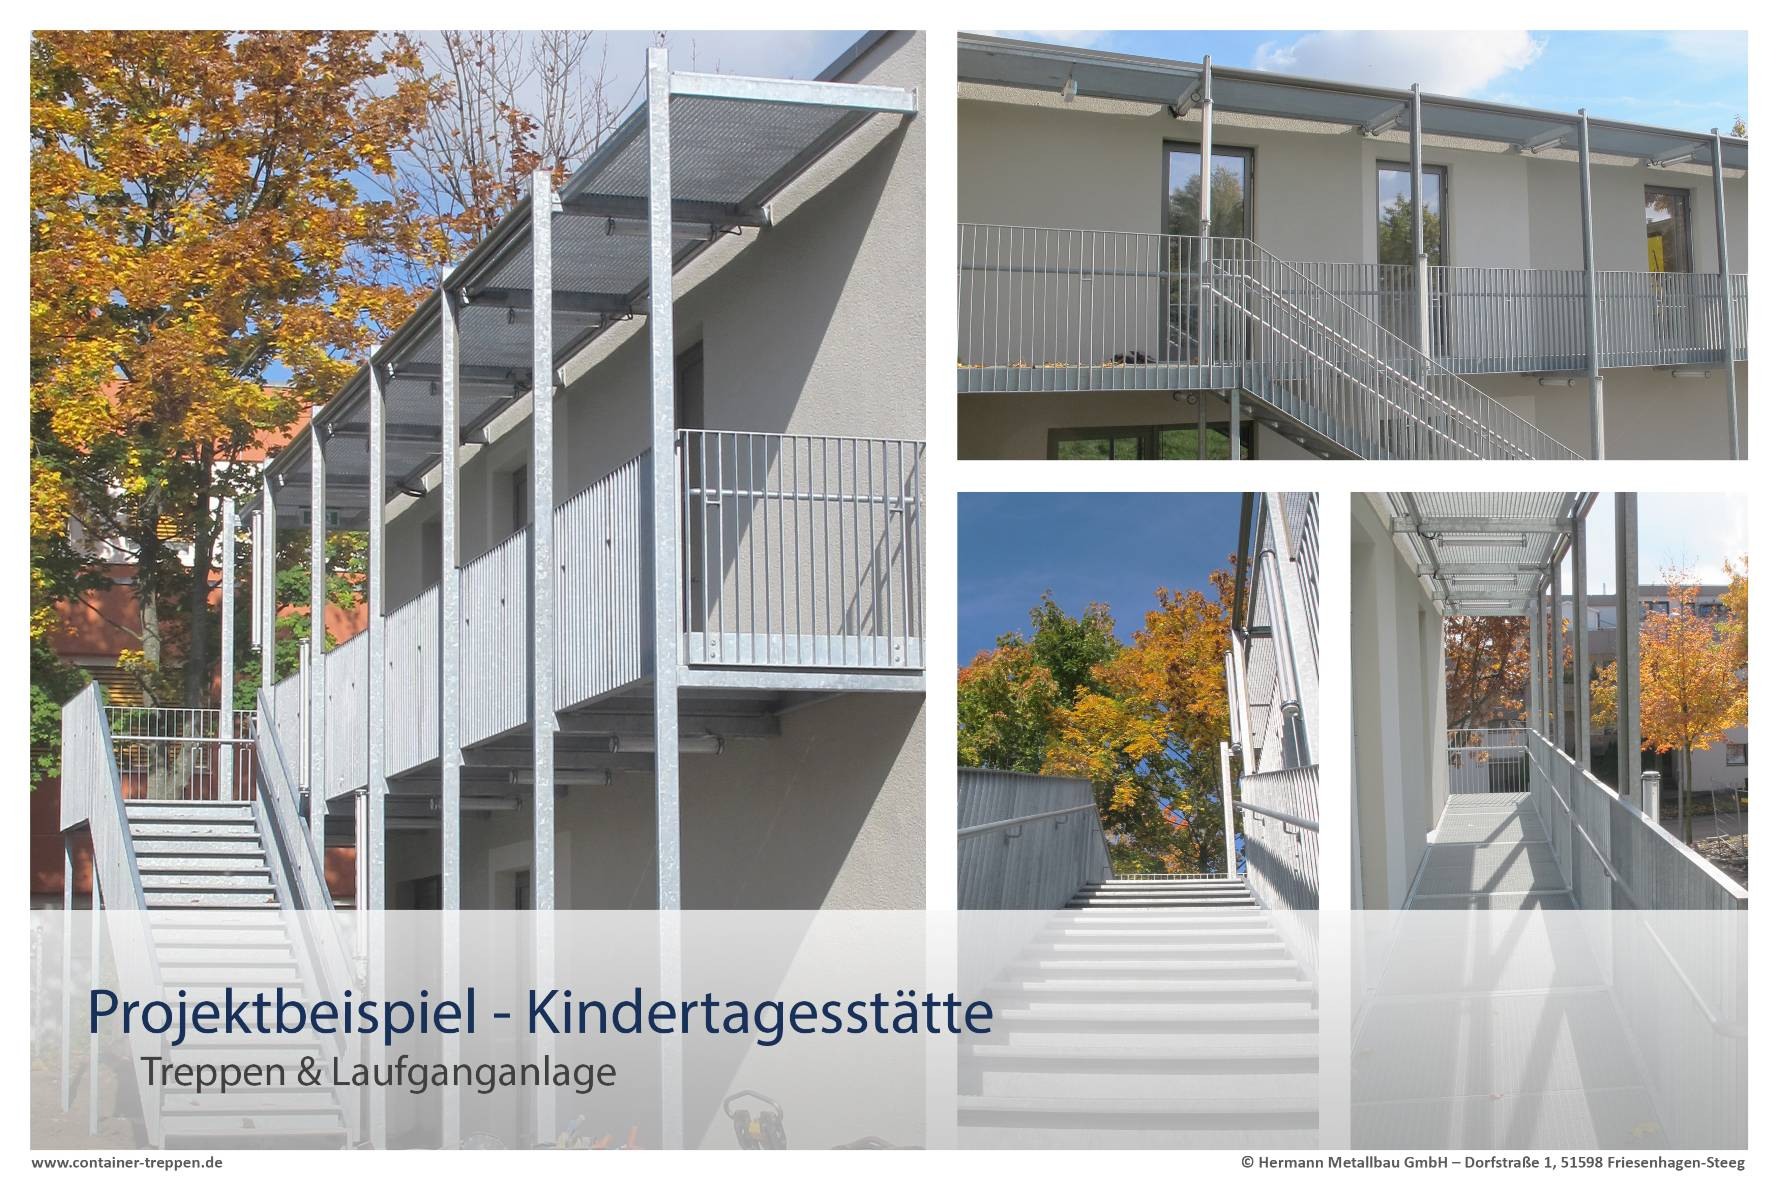 Treppe_Container_KITA_02